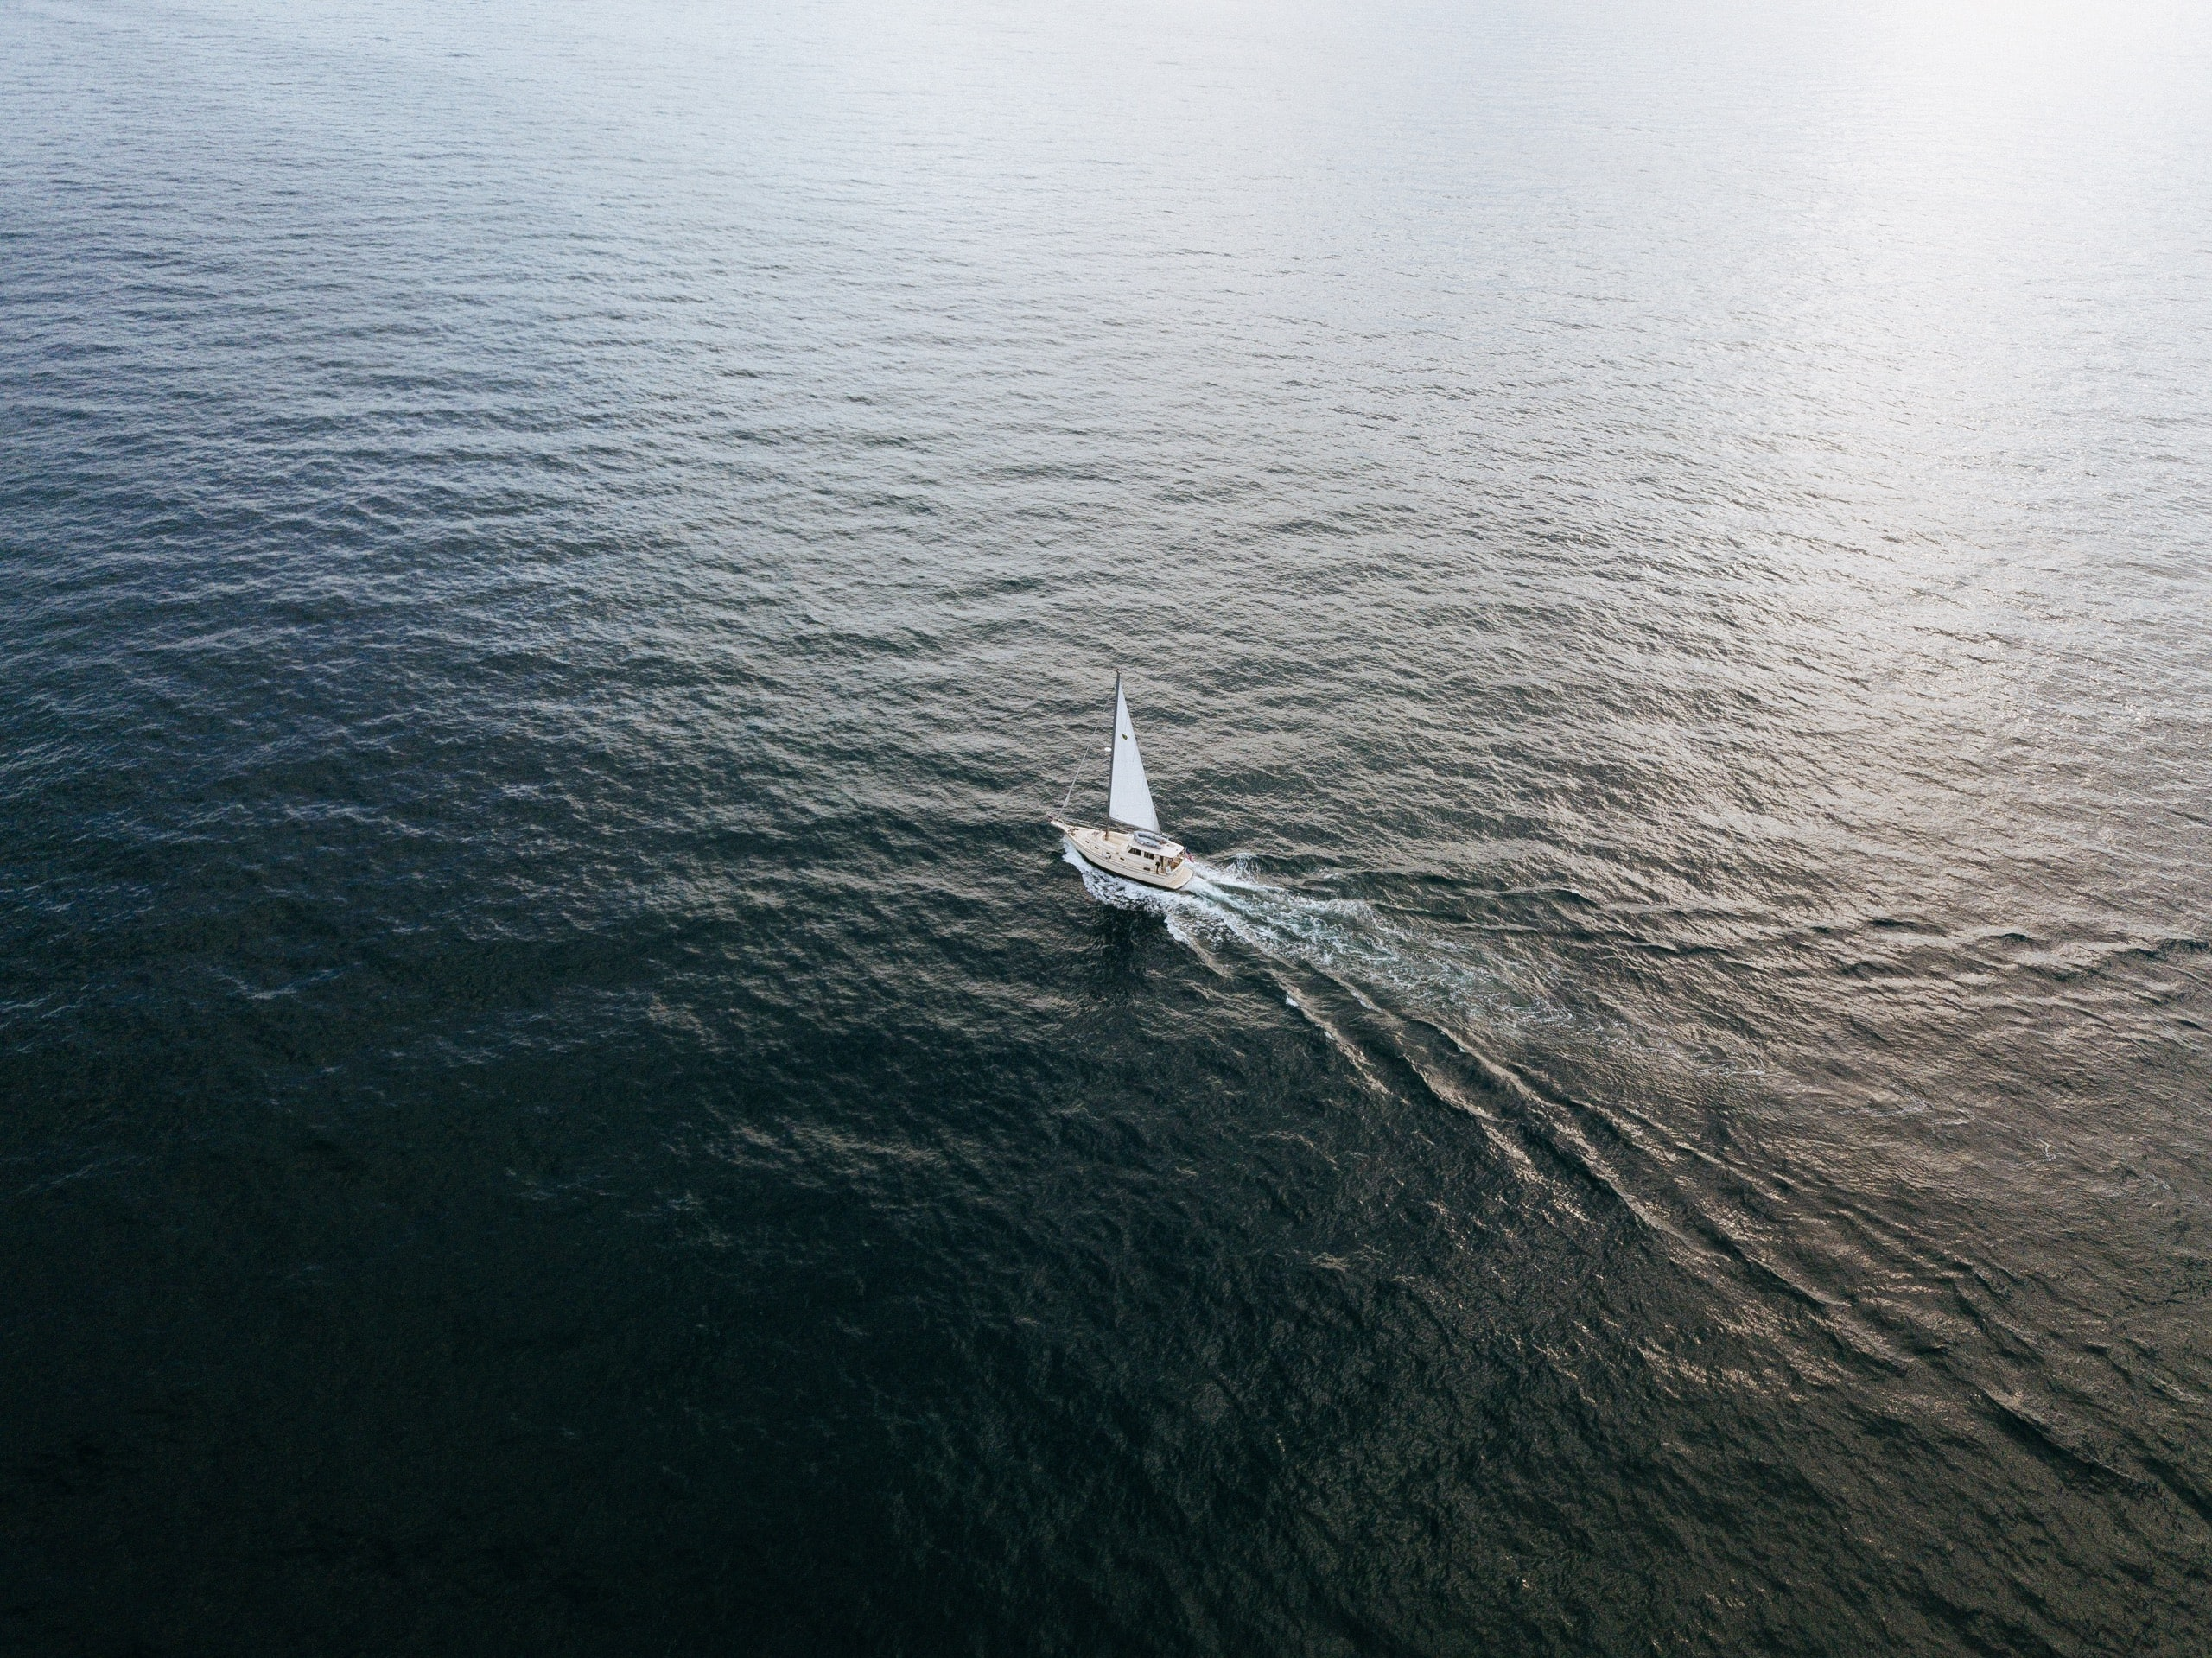 sailboat at the body of water